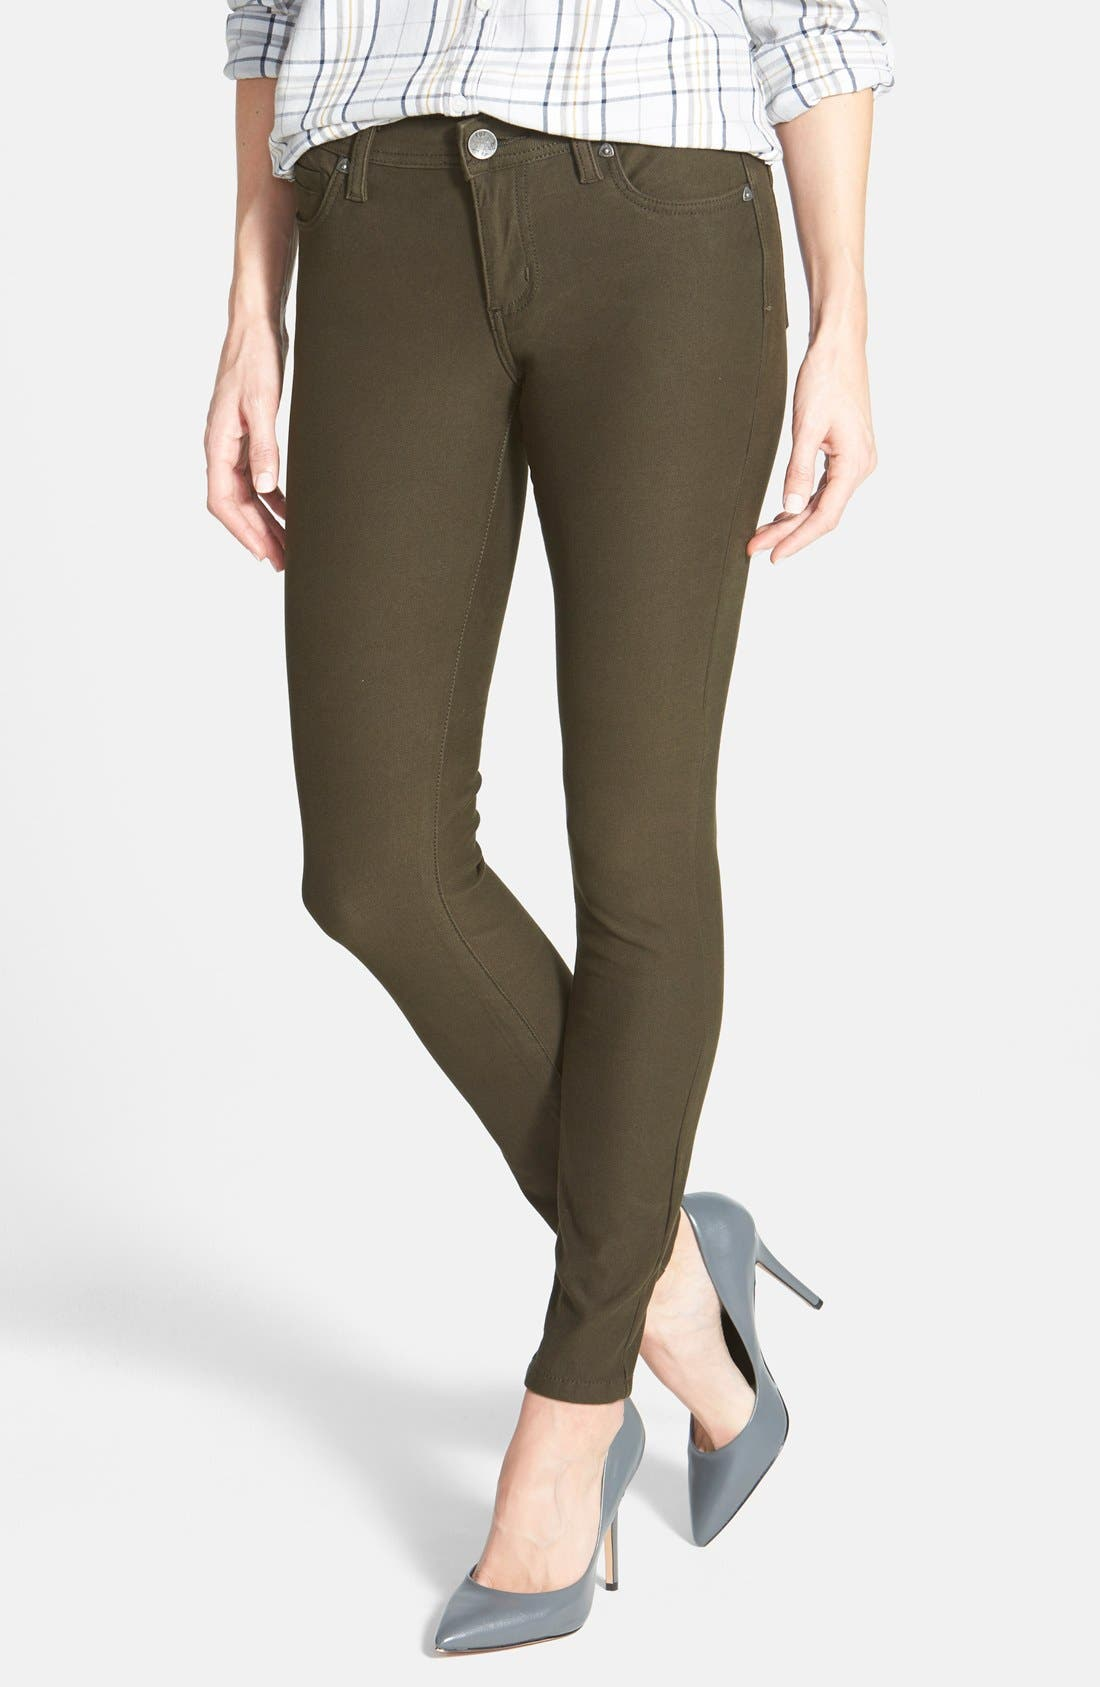 Alternate Image 1 Selected - KUT from the Kloth 'Mia' Colored Stretch Skinny Jeans